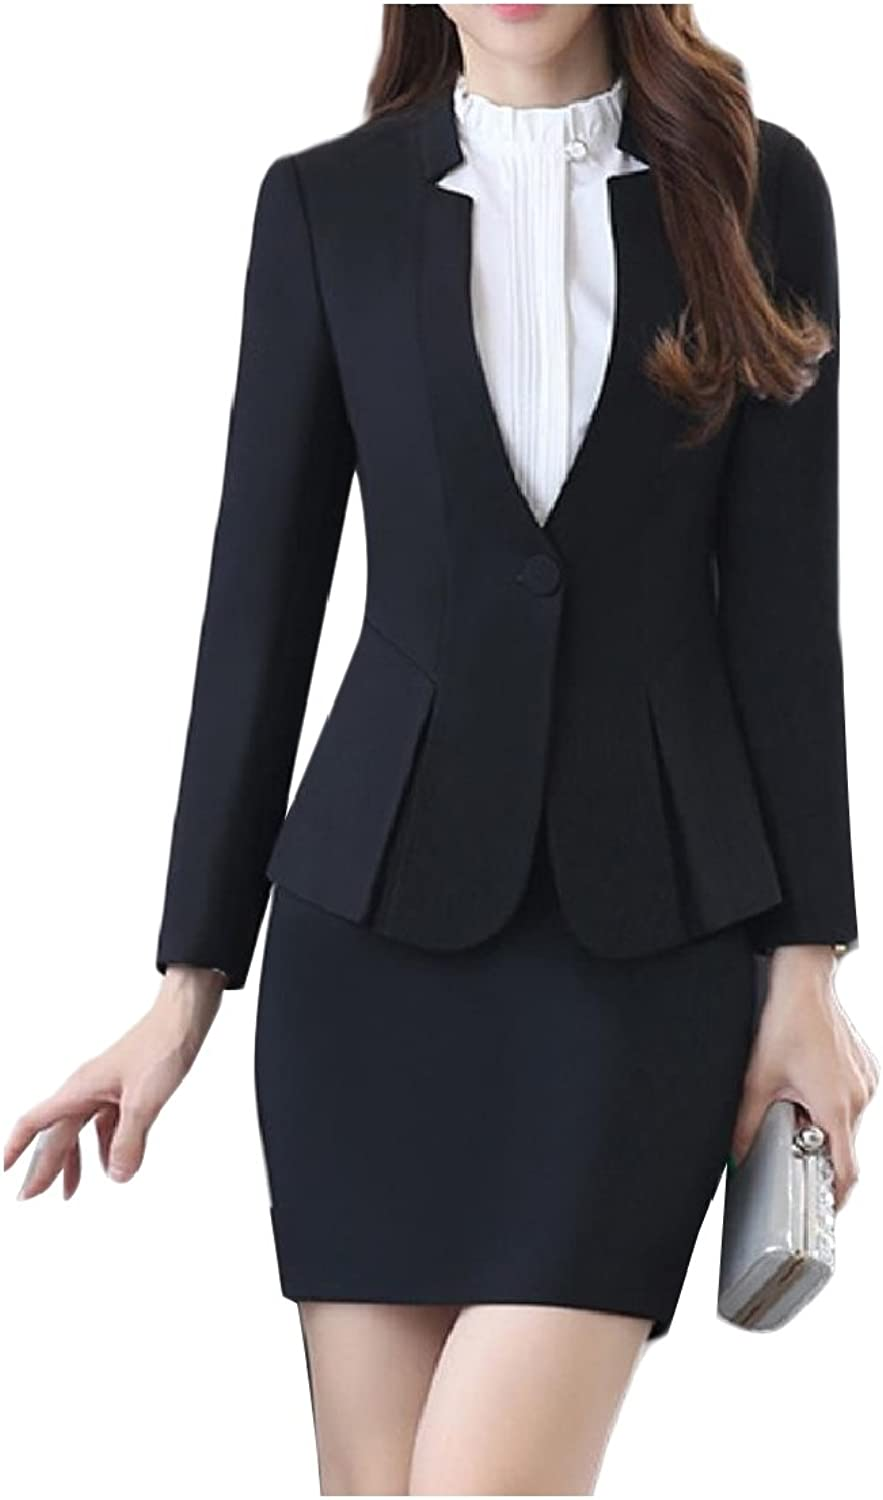 Comaba Womens Solid colord Work Buckle Peplum Blazer Suit Dress Sets